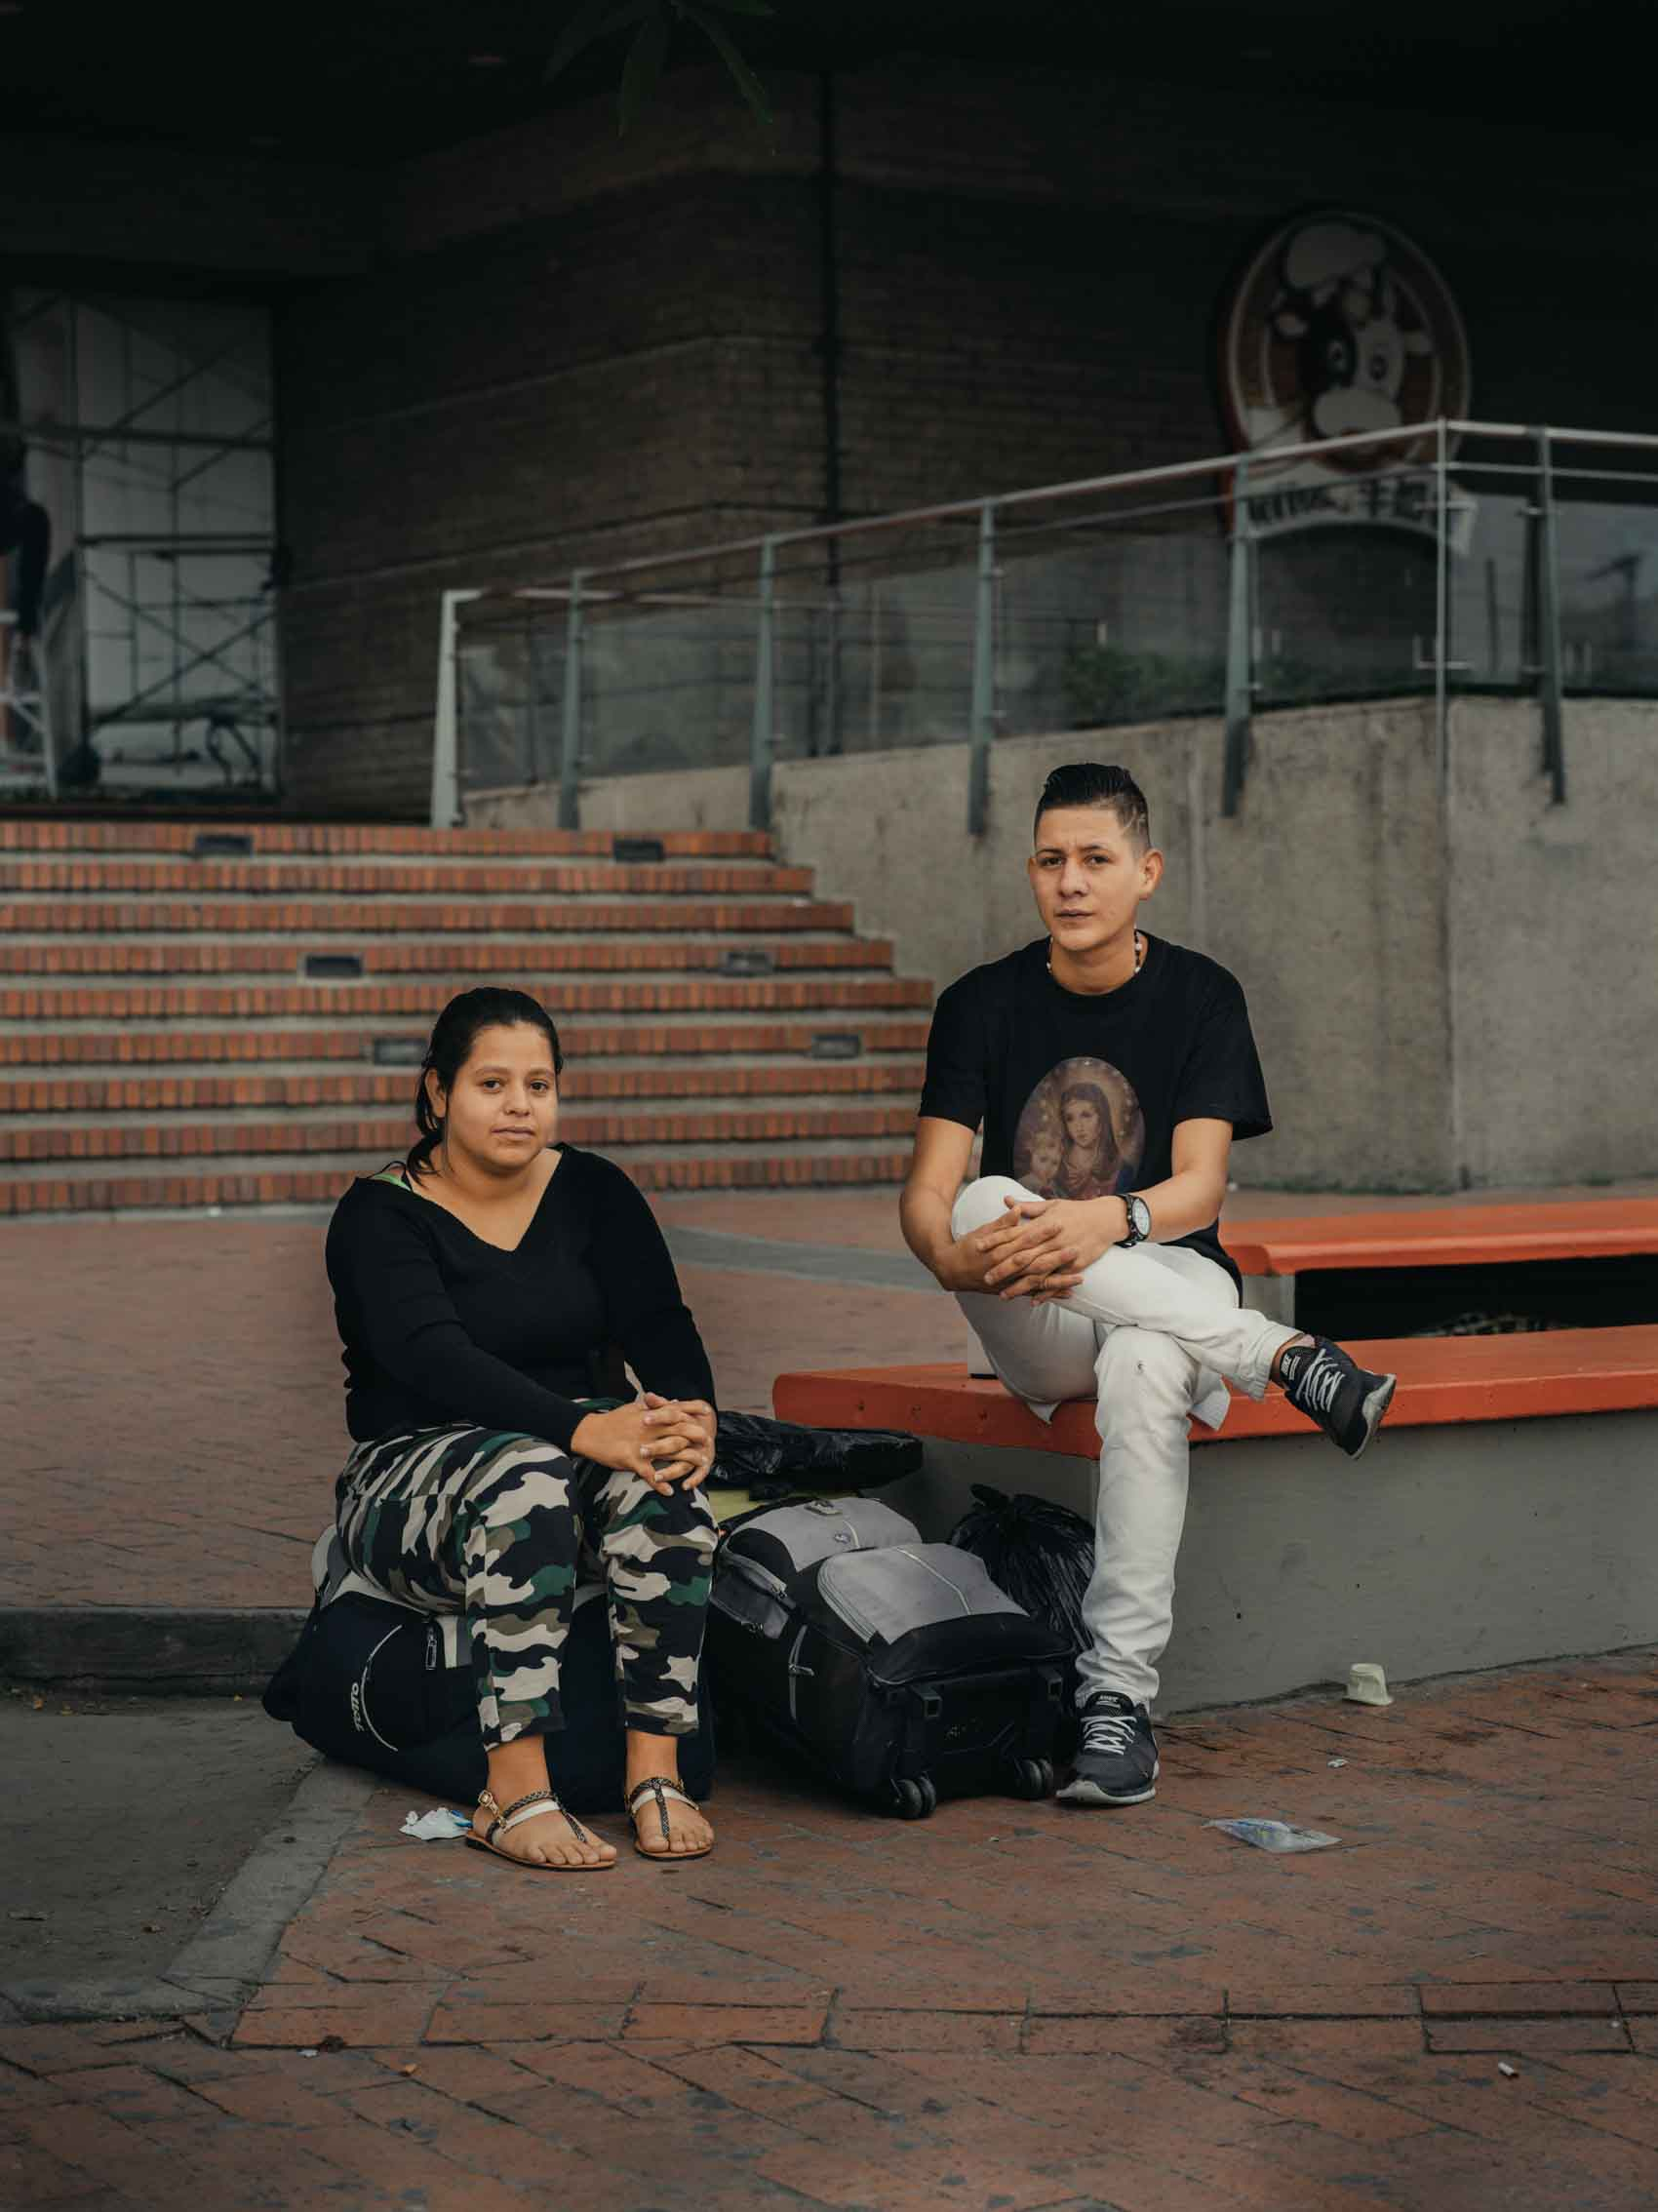 portrait of friends sitting on bench outside mall